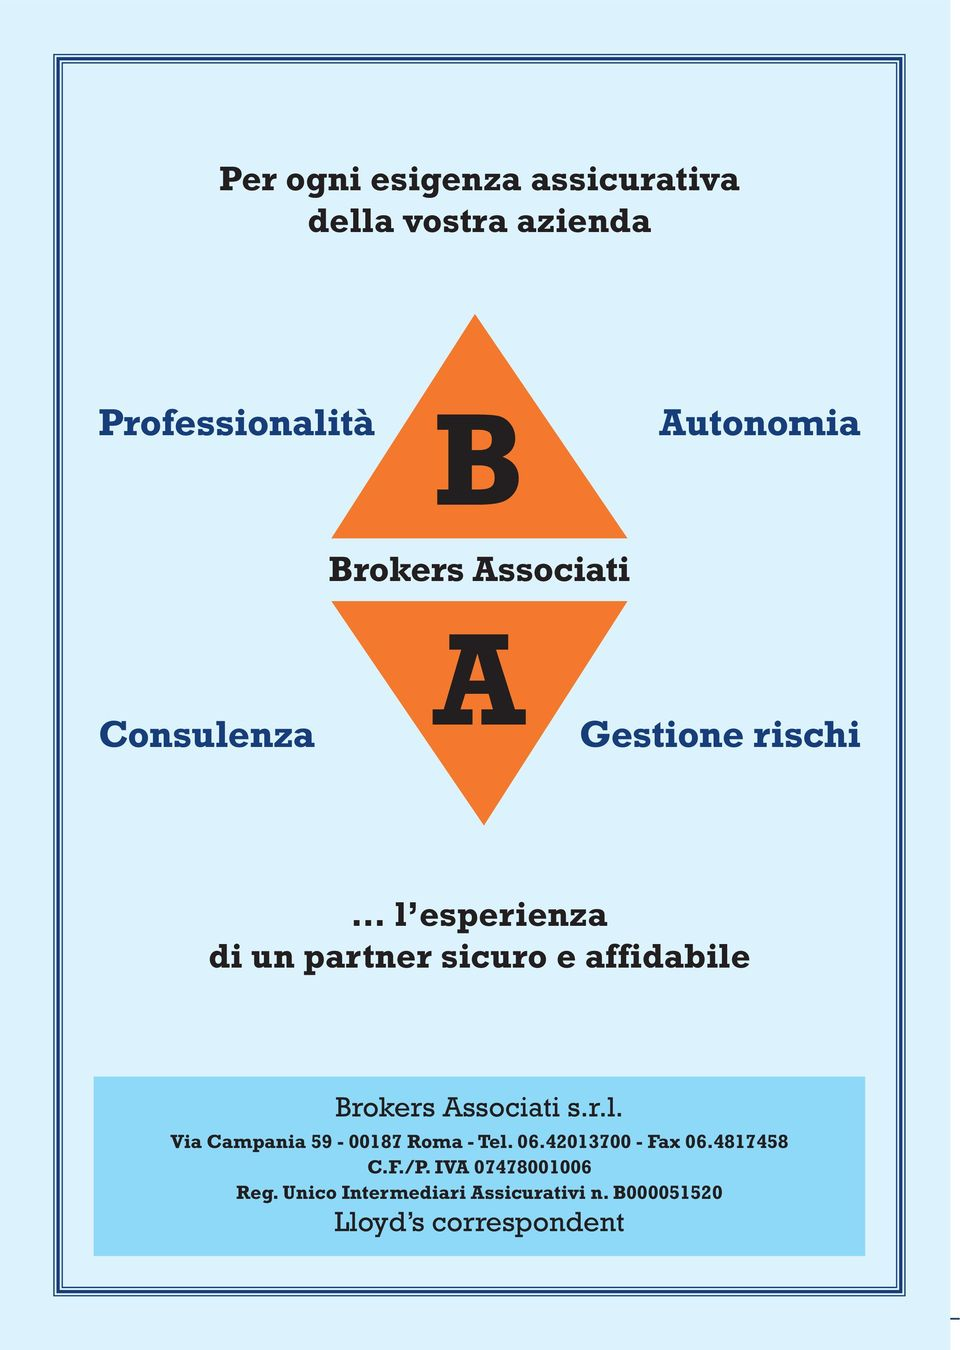 Brokers Associati s.r.l. Via Campania 59-00187 Roma - Tel. 06.42013700 - Fax 06.4817458 C.